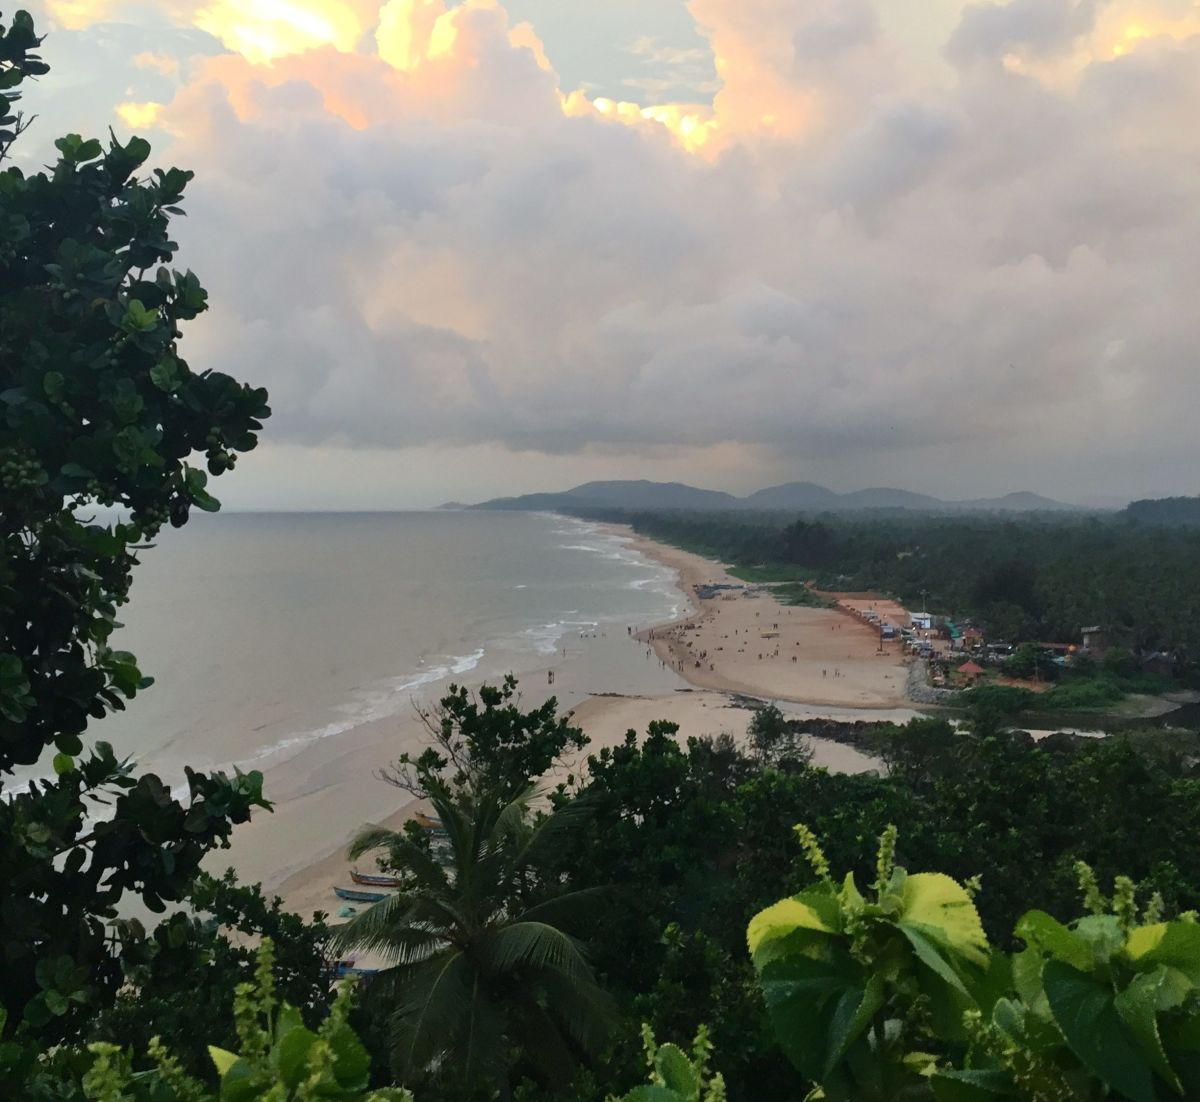 Gokarna's Beaches: You Can Thank Hippies For Finding This Place | Lutalica